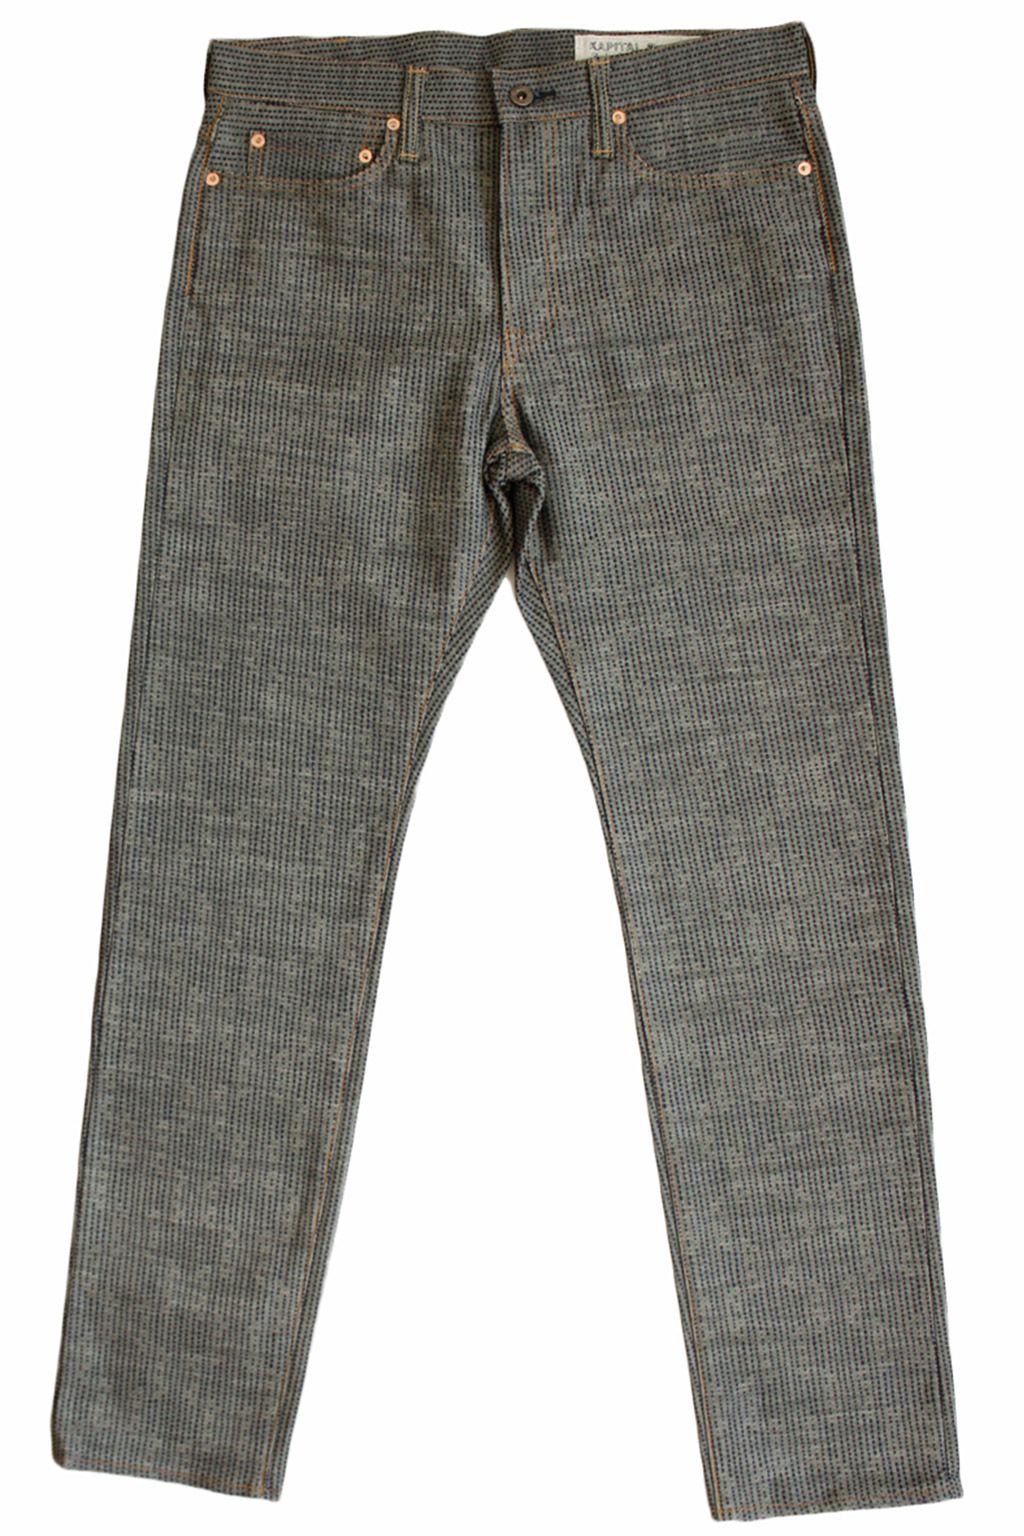 Kapital Century Denim 5P Stone N7S - Grey